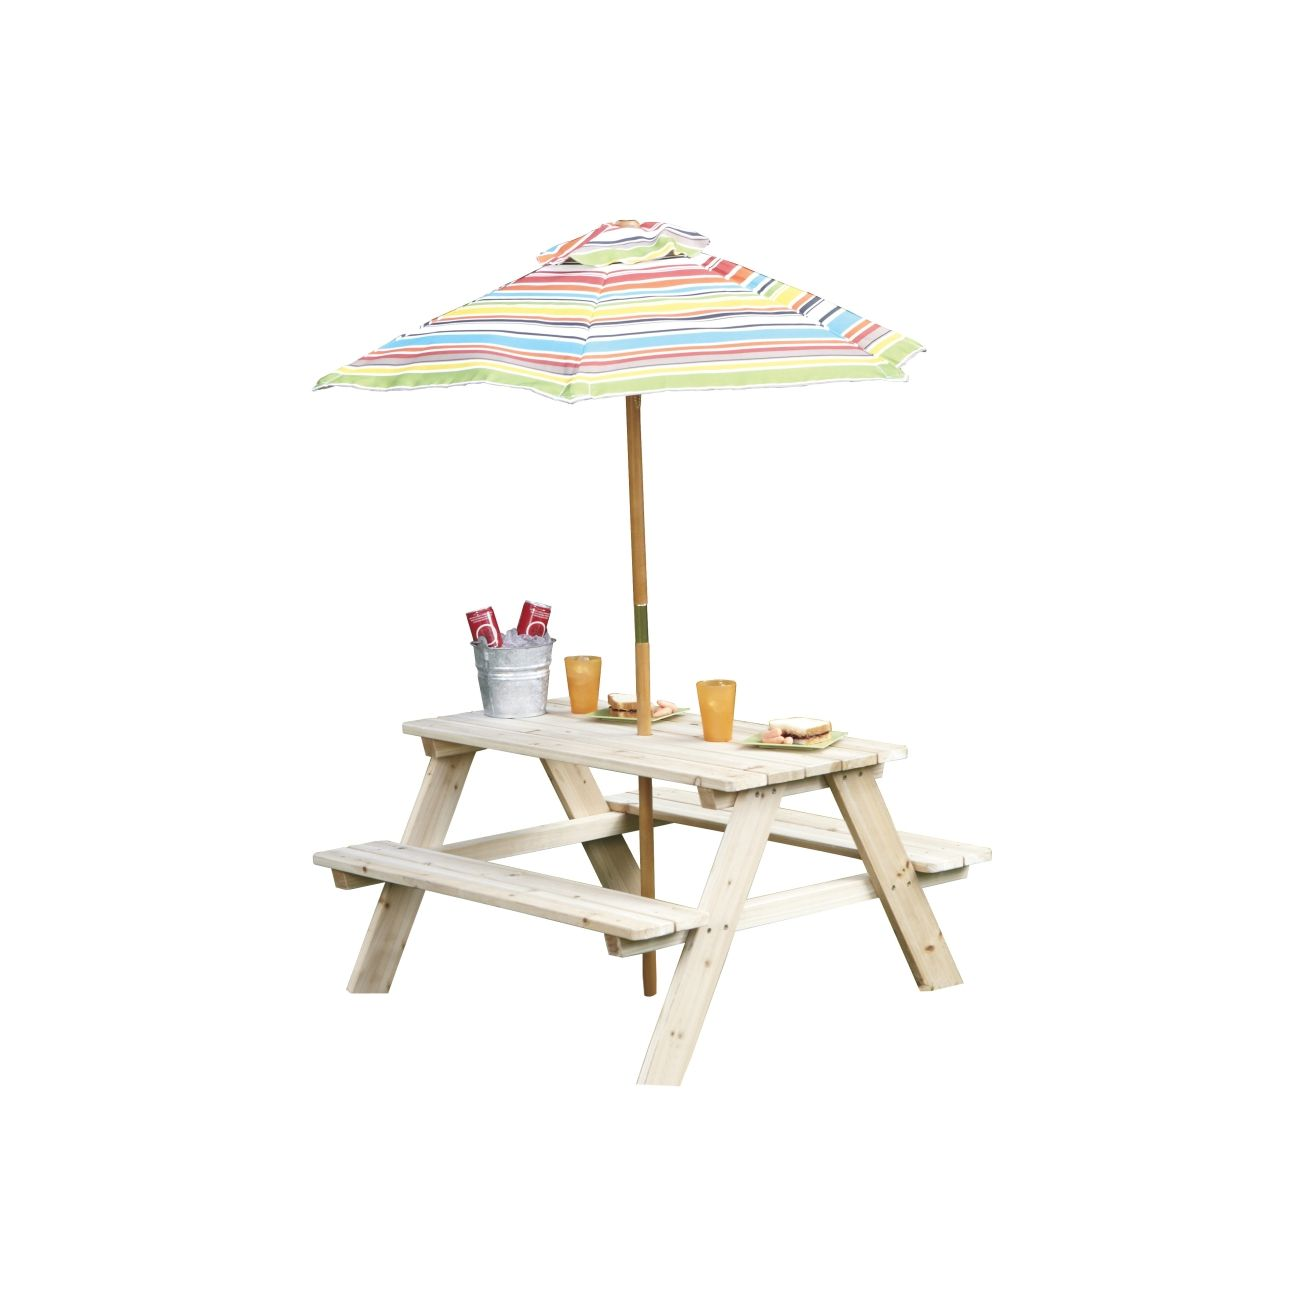 Living Accents Kids Picnic Table With Beach Umbrella Kids Picnic